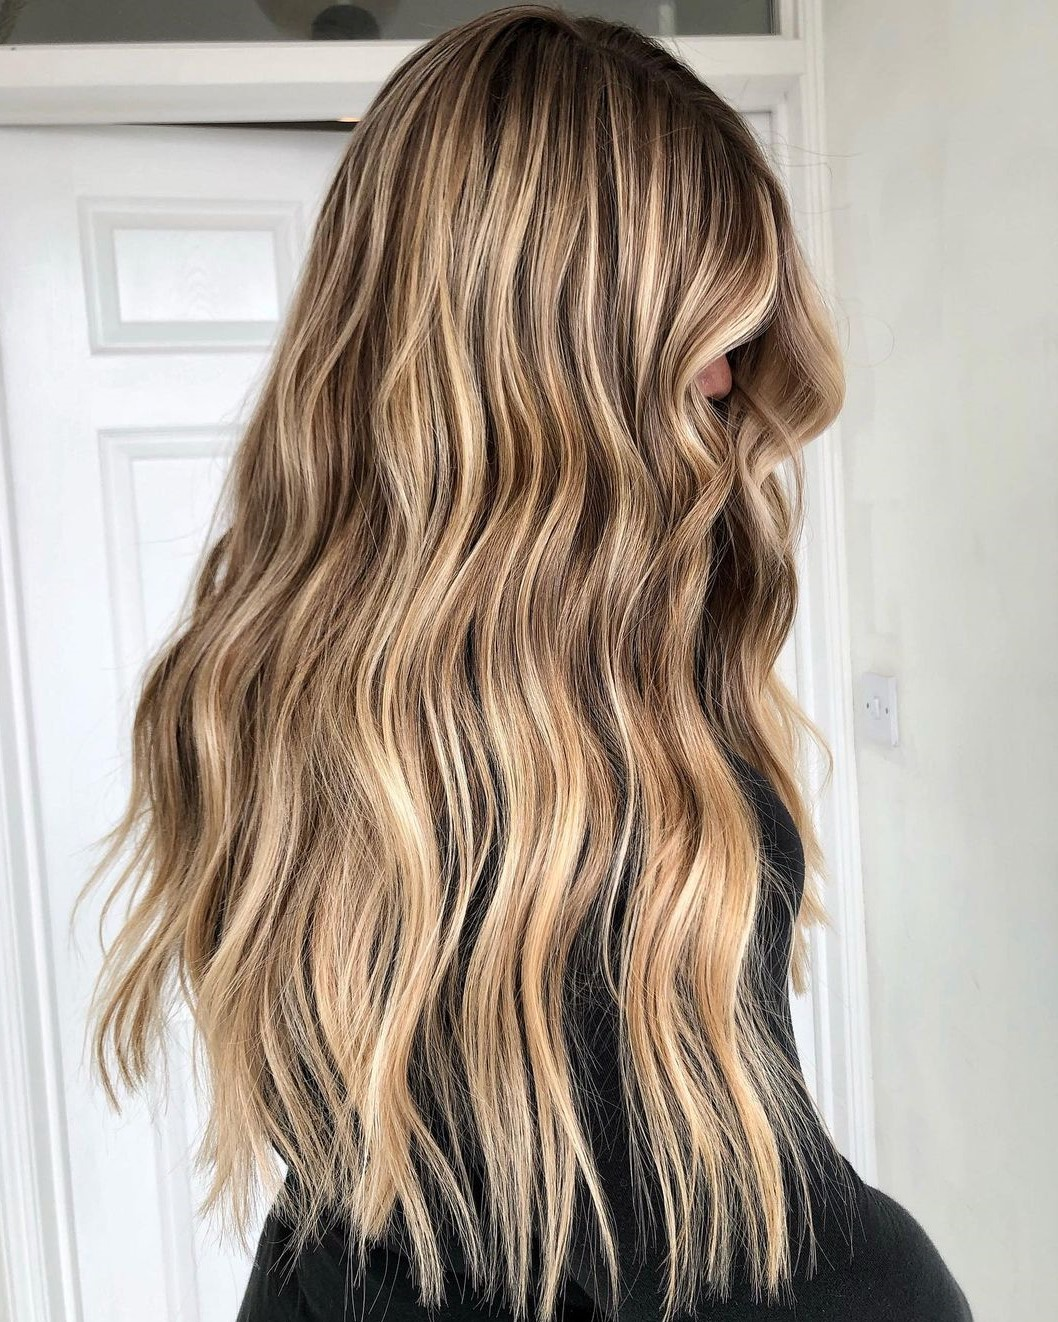 Long Dirty Blonde Hair with Highlights